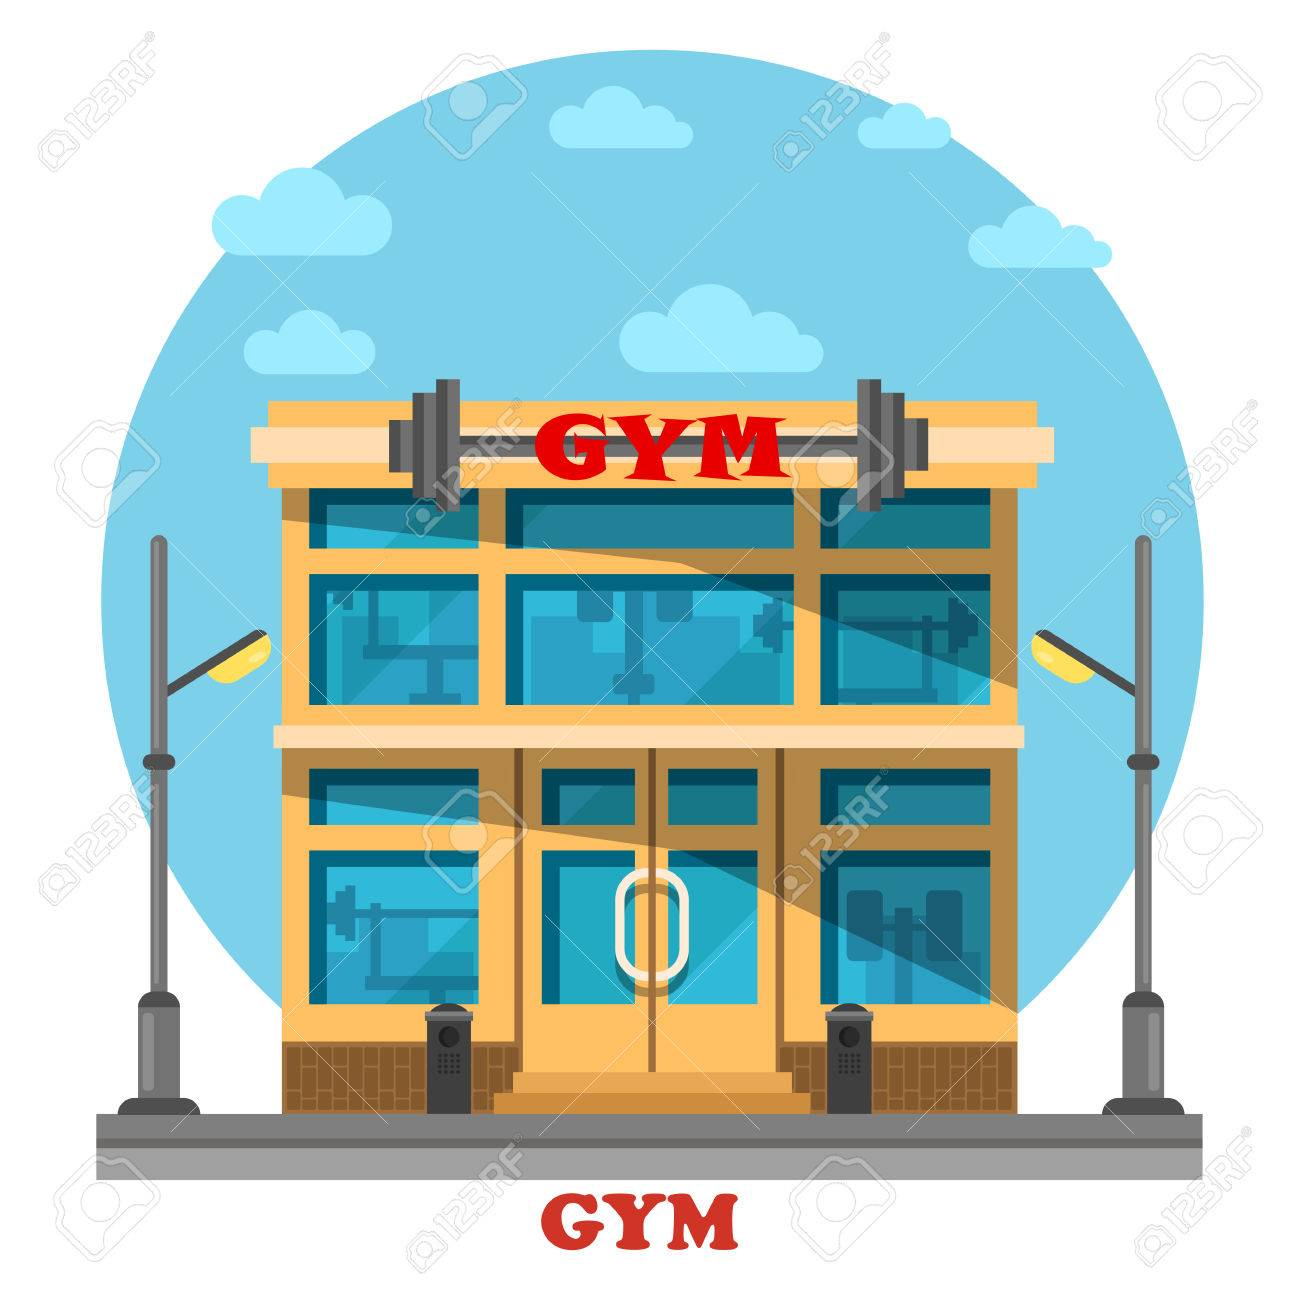 hight resolution of gym or gymnasium fitness center architecture